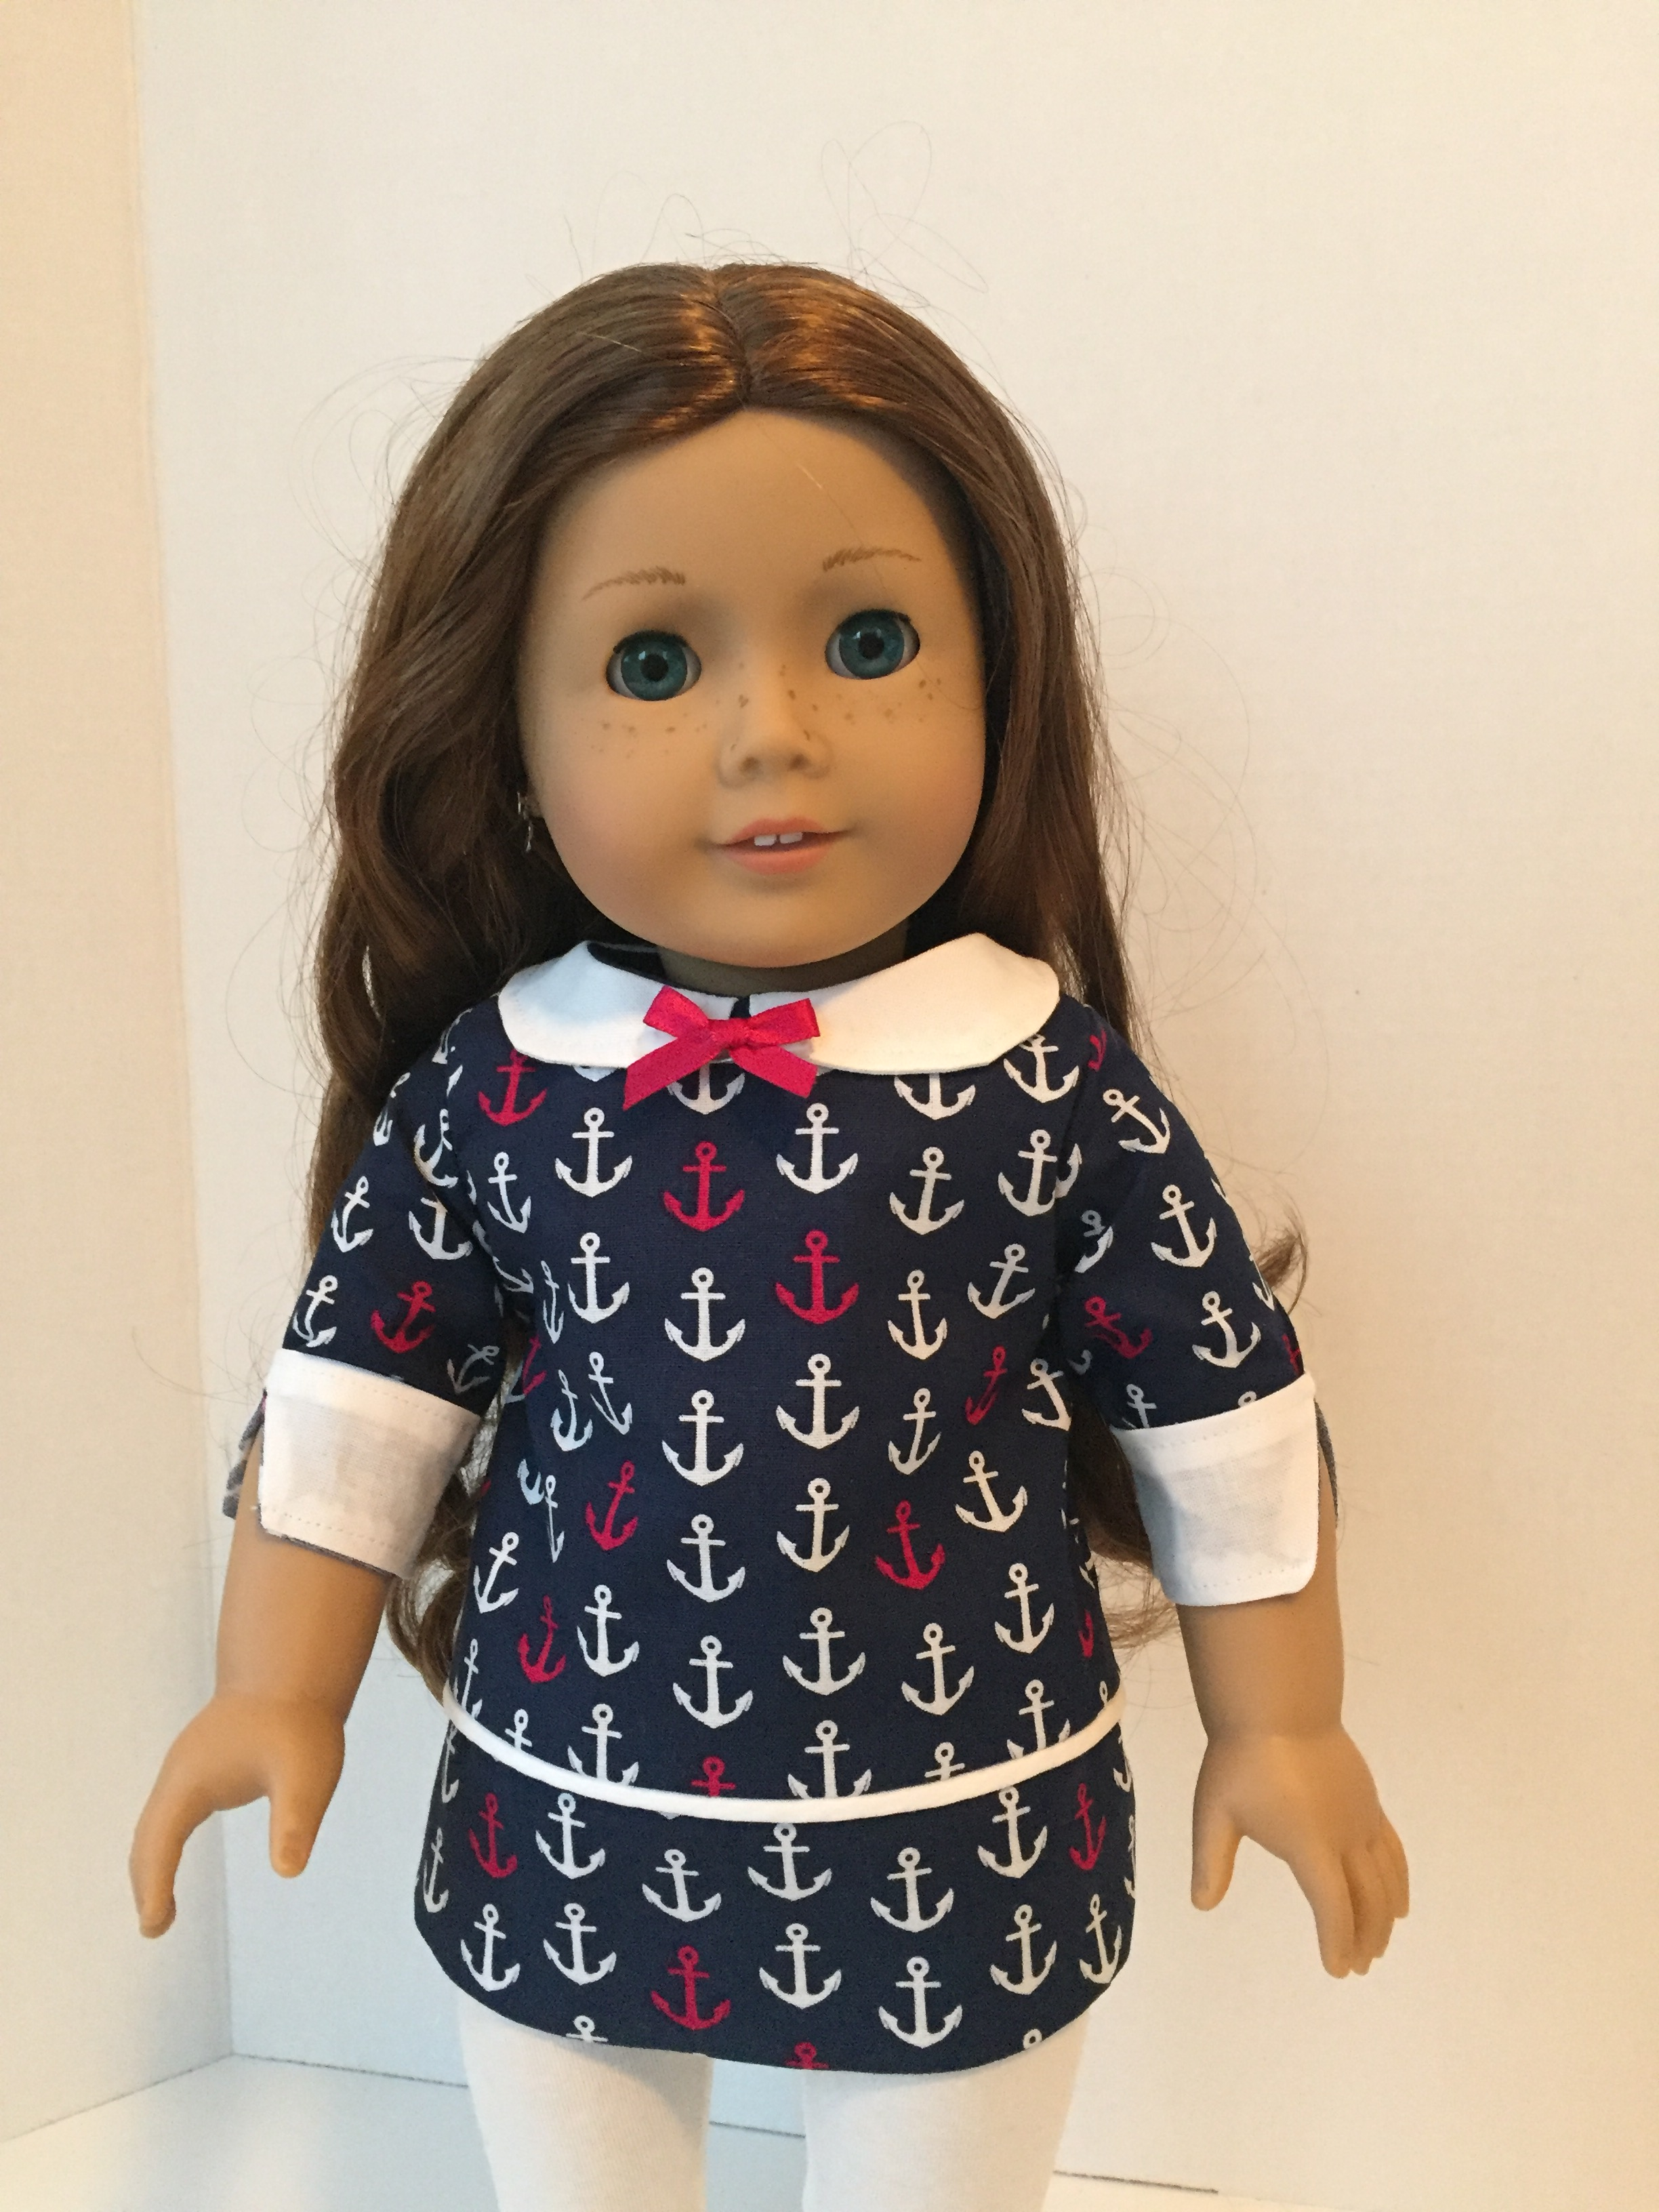 www.ohsewkat.com pdf doll sewing patterns for 18 inch dolls like American Girl and Our Generation